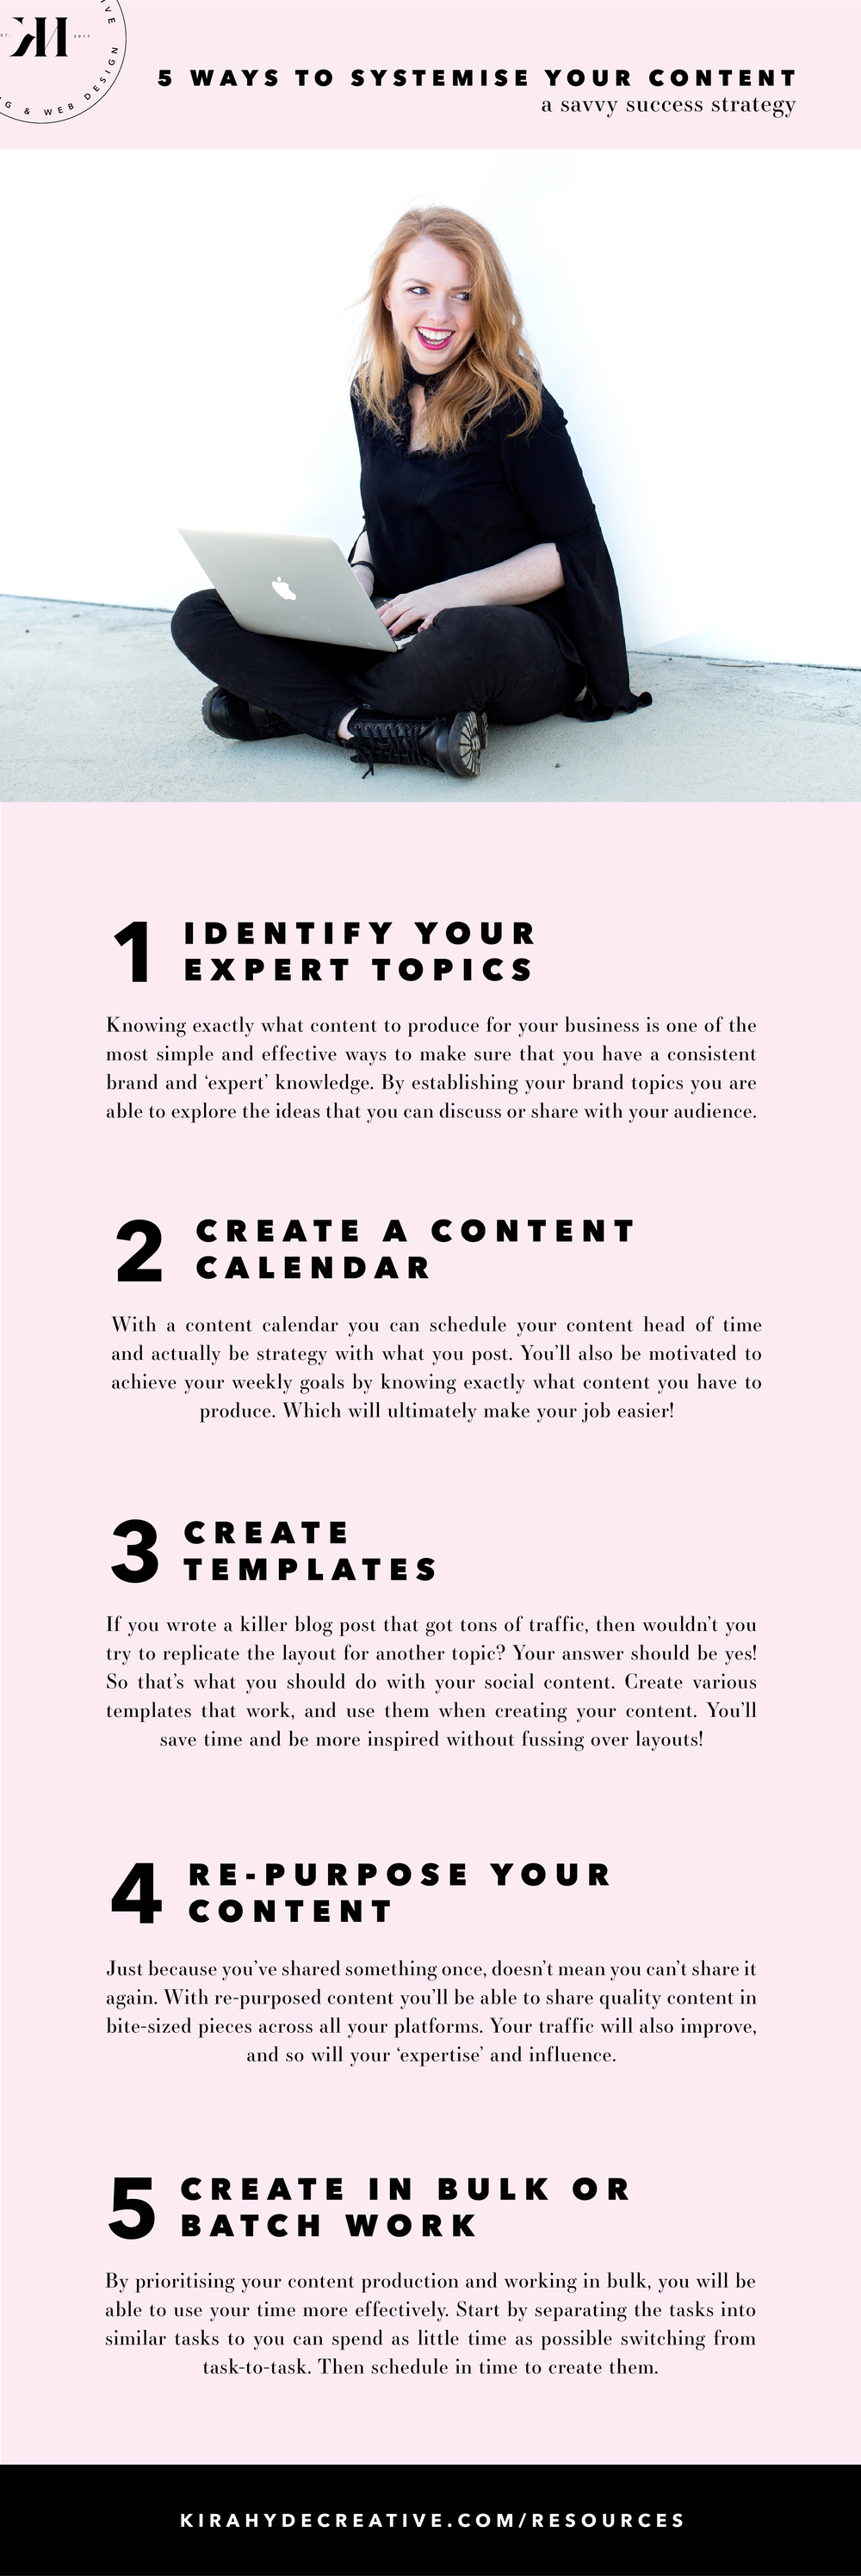 5 Ways to Systemise Your Content Creation - Kira Hyde Creative